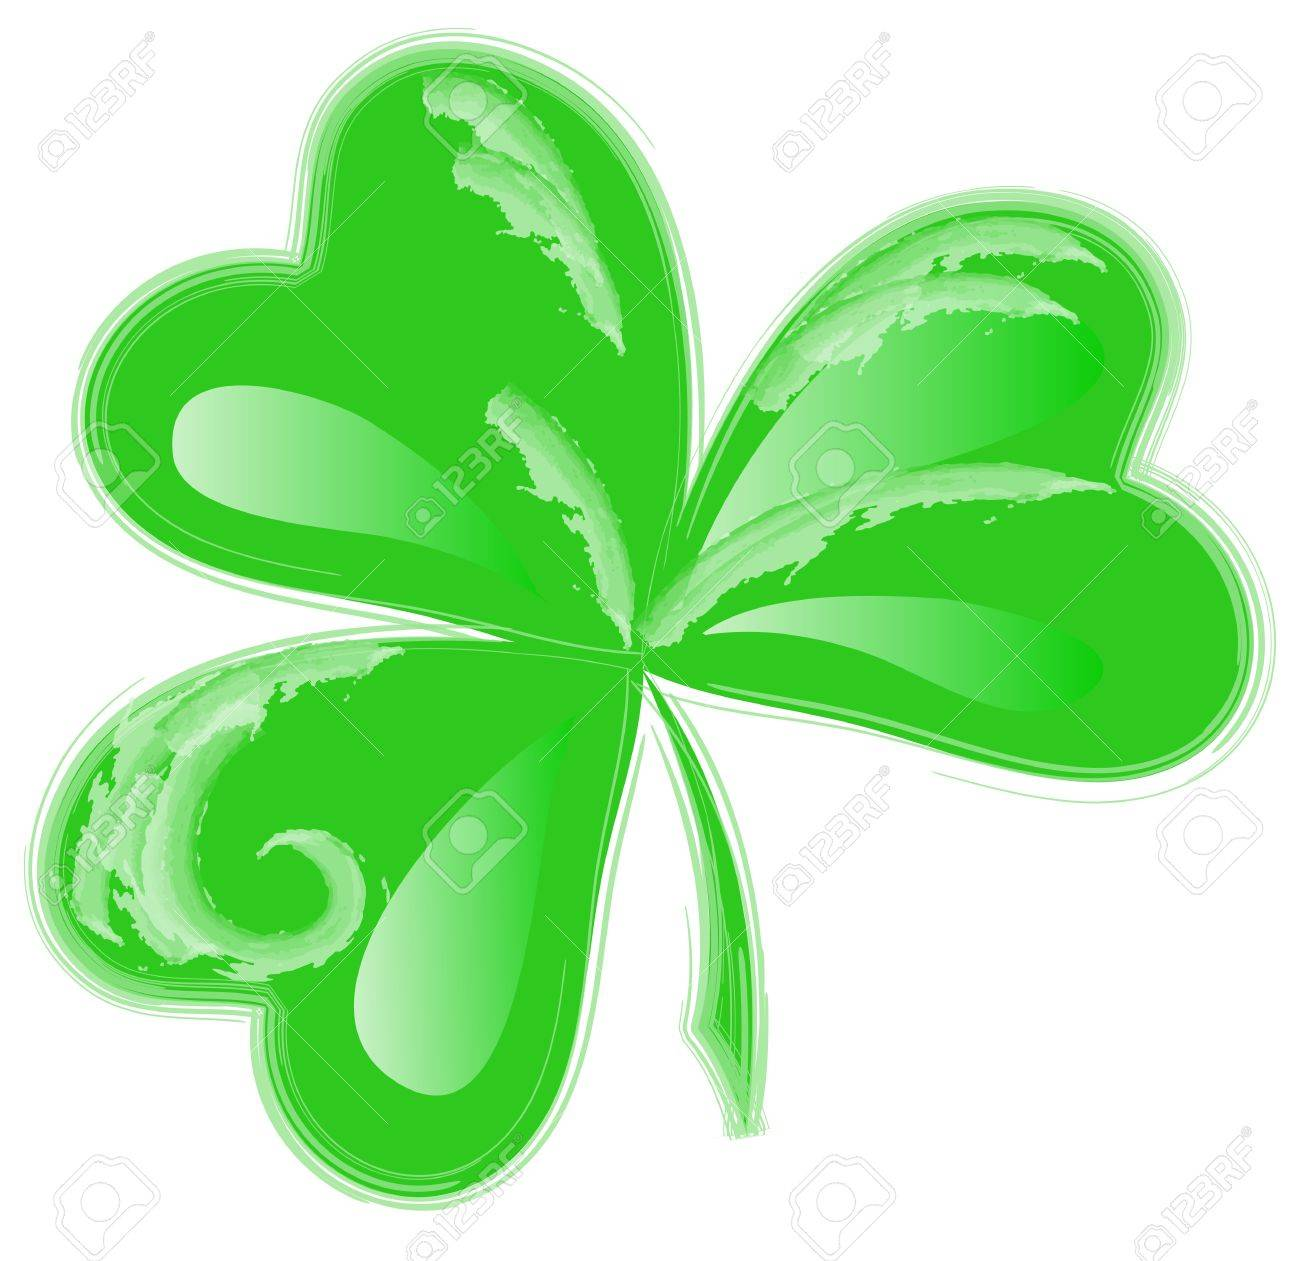 1300x1261 St Patrick Day Three Leaf Clover Stock Photo, Picture And Royalty